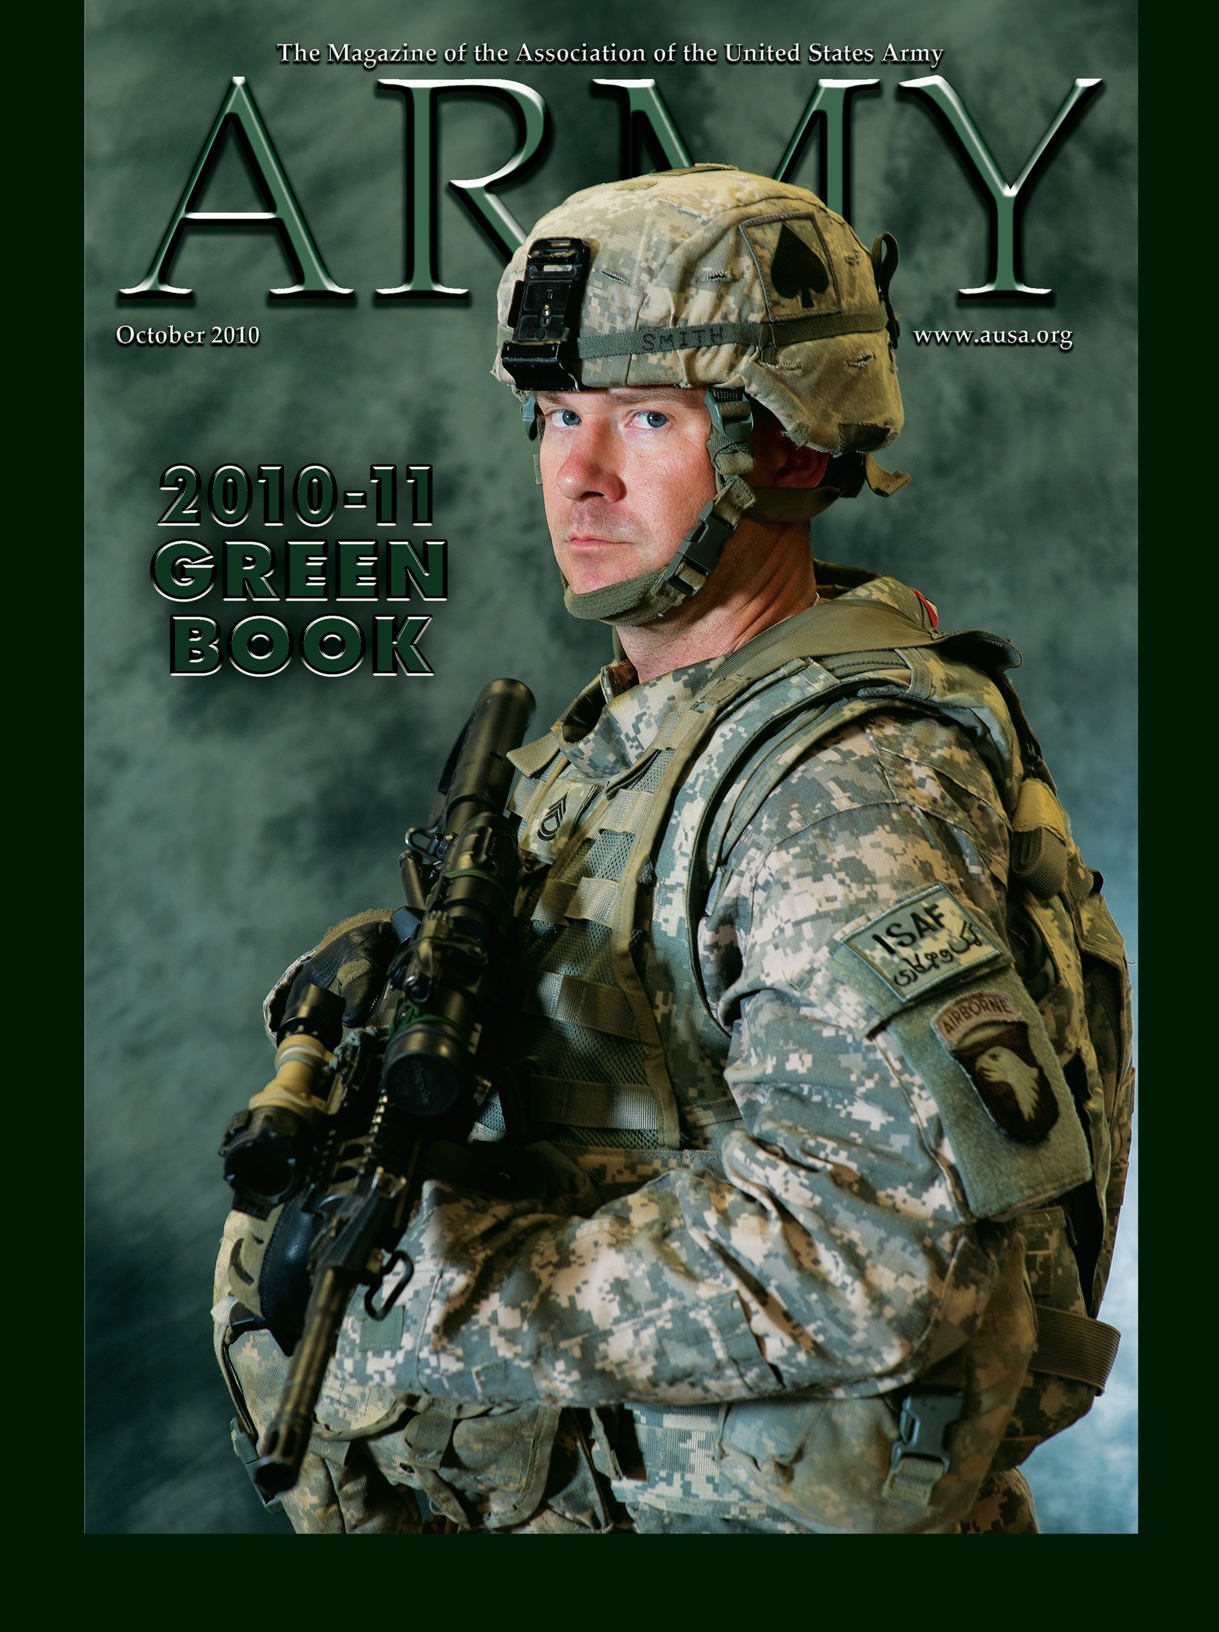 Army Magazine : October 2010 Volume 60, Issue 10 by French, Mary Blake